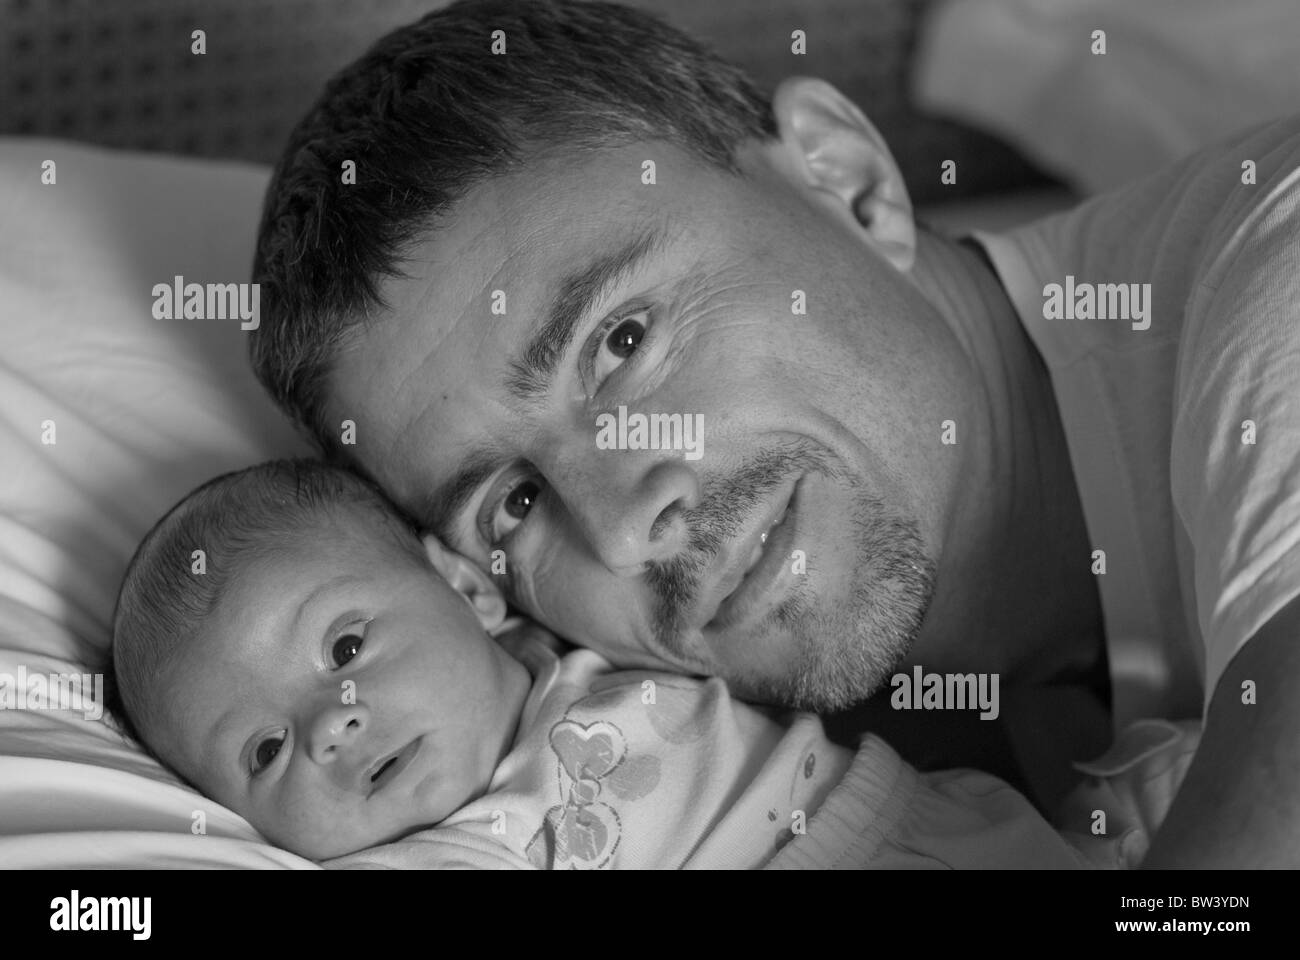 Father's Protection Behavior for his Newborn Daughter - Stock Image